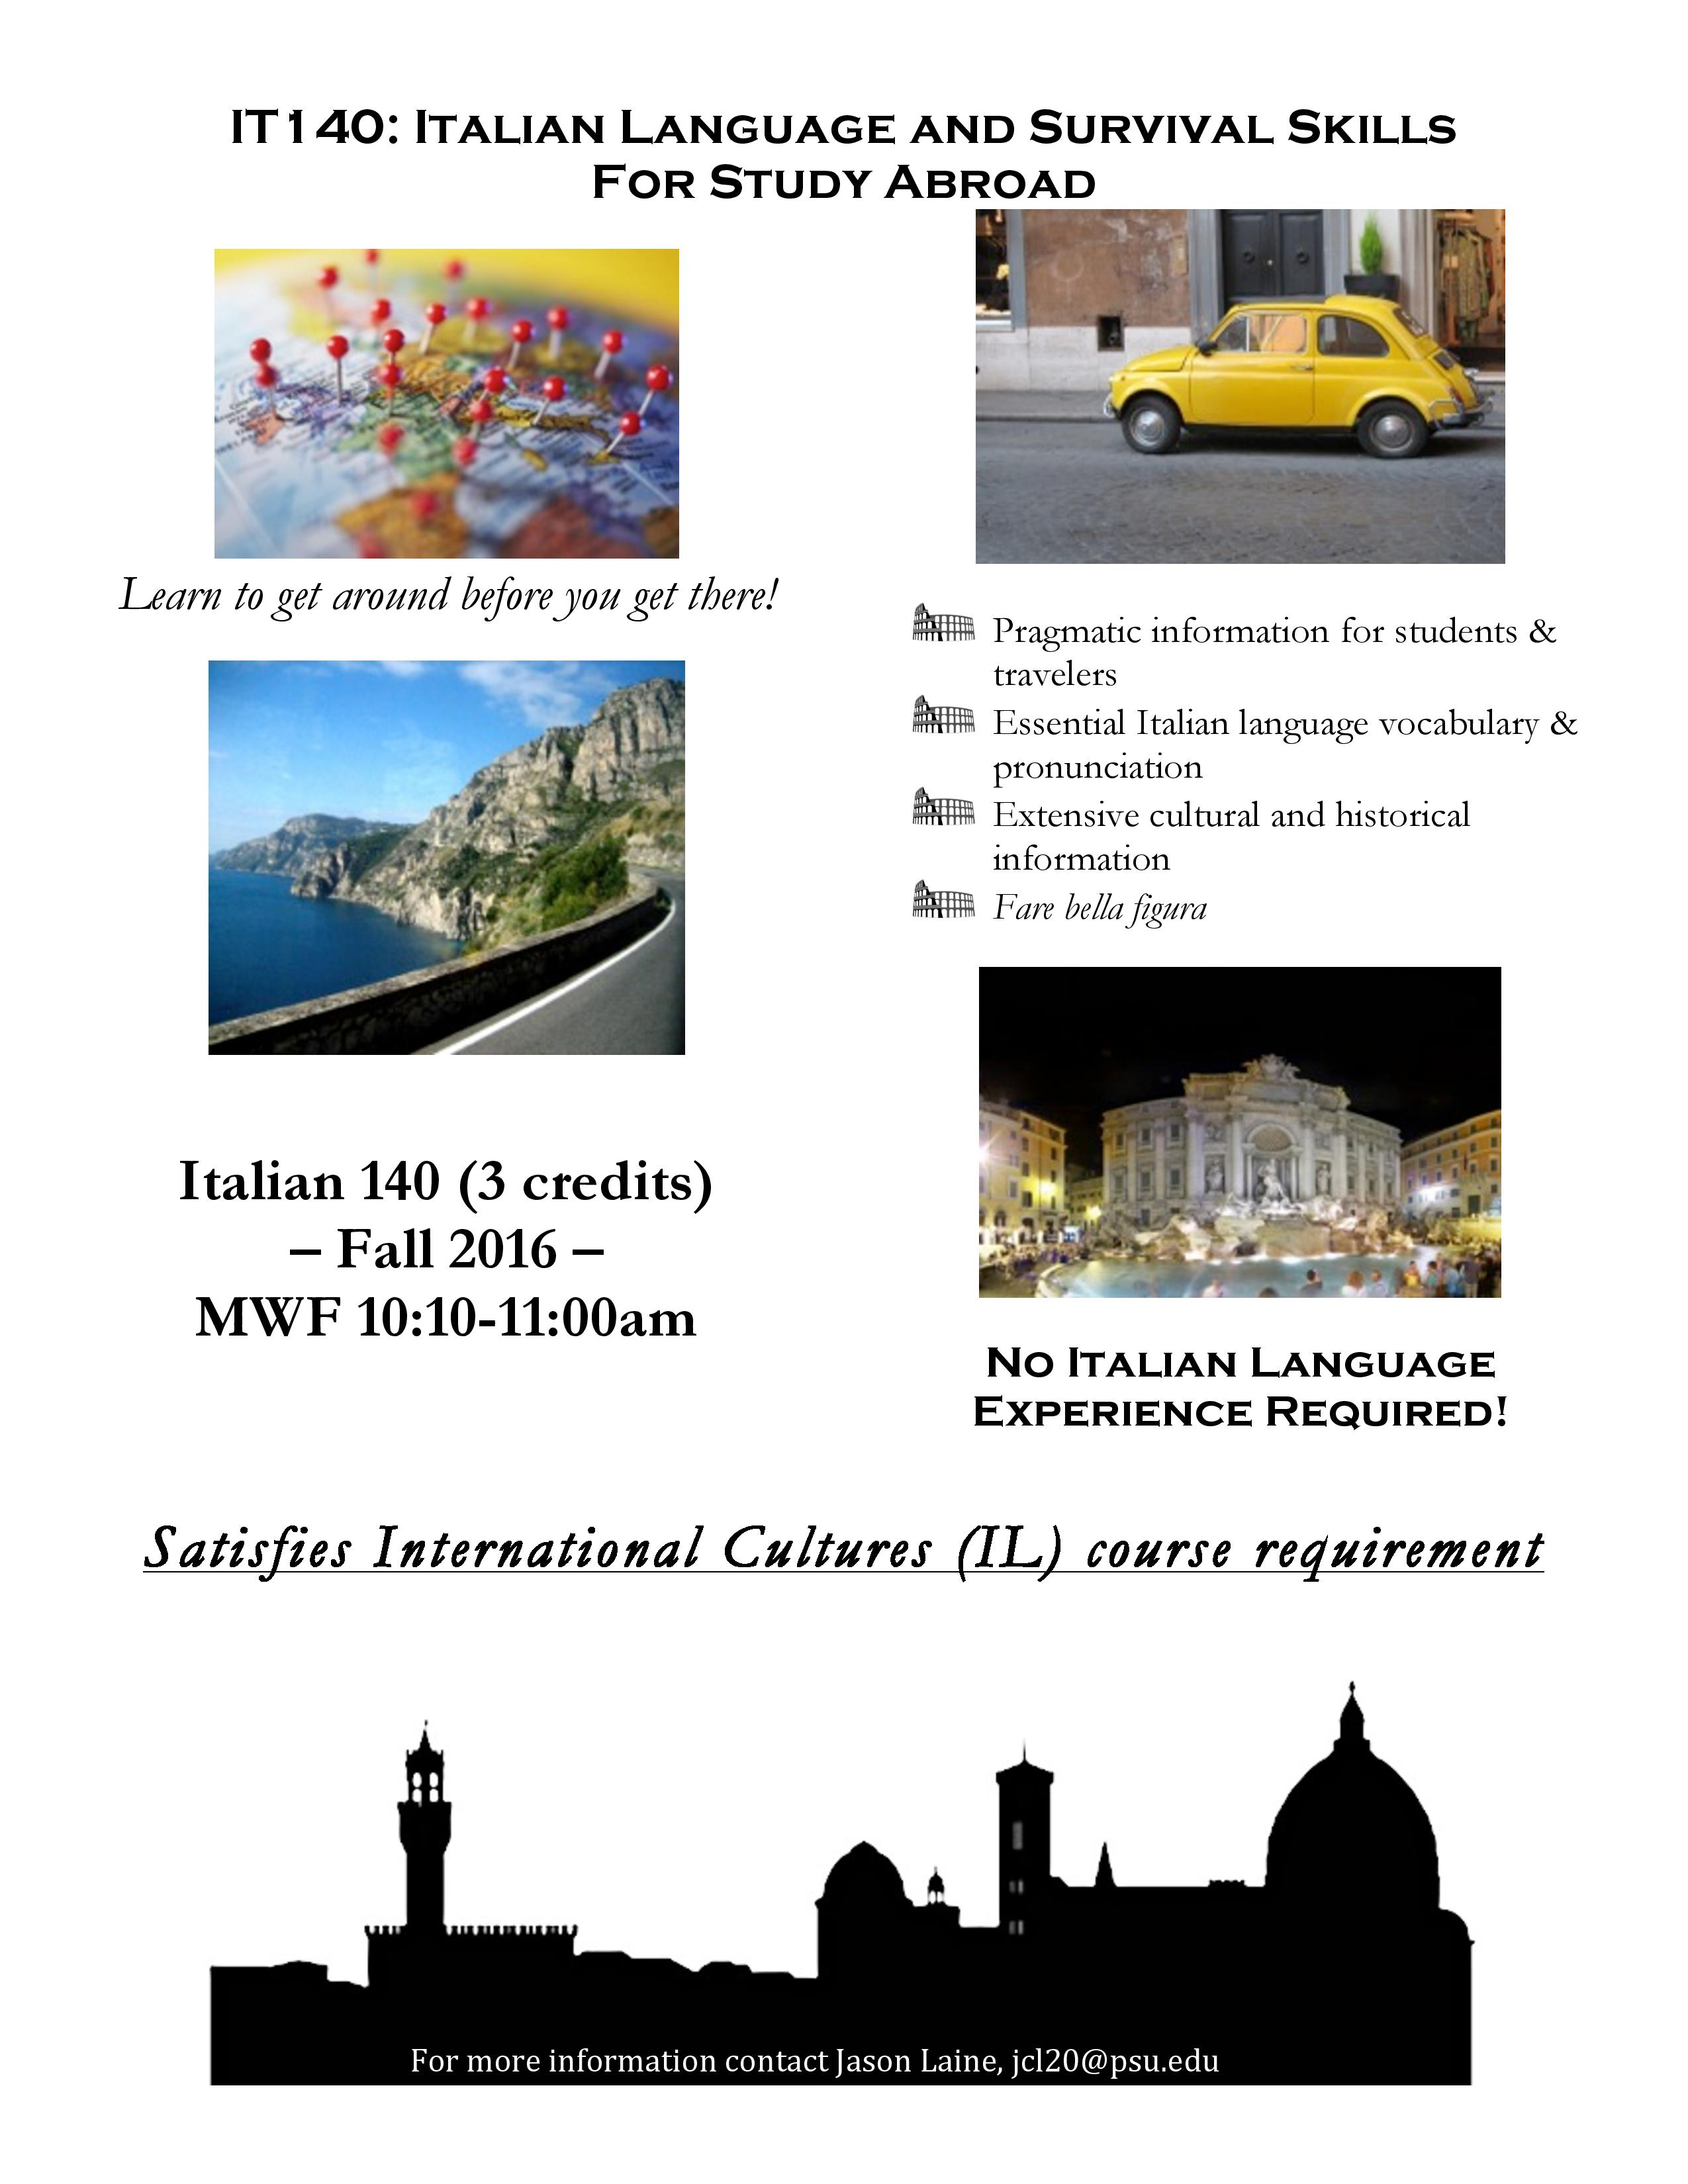 Studying in Italy this Spring? Italian Language and Survival Skills for Study Abroad is the course for you!